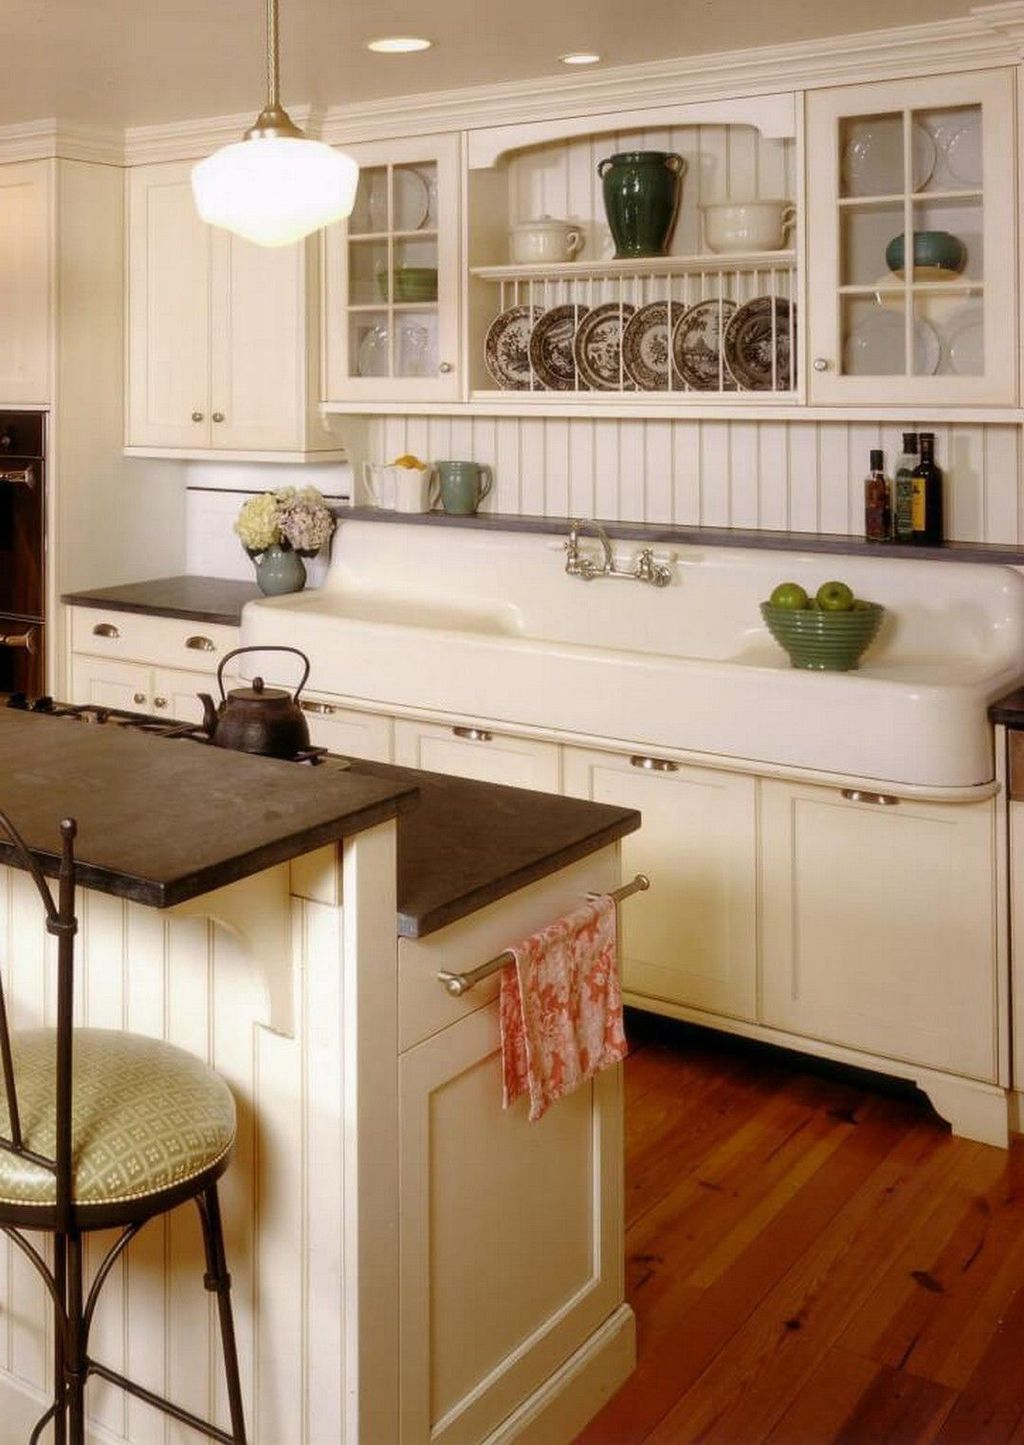 31 stunning farmhouse kitchen ideas on a budget ideal integrated timeless trends κουζίνες on kitchen ideas on a budget id=63648